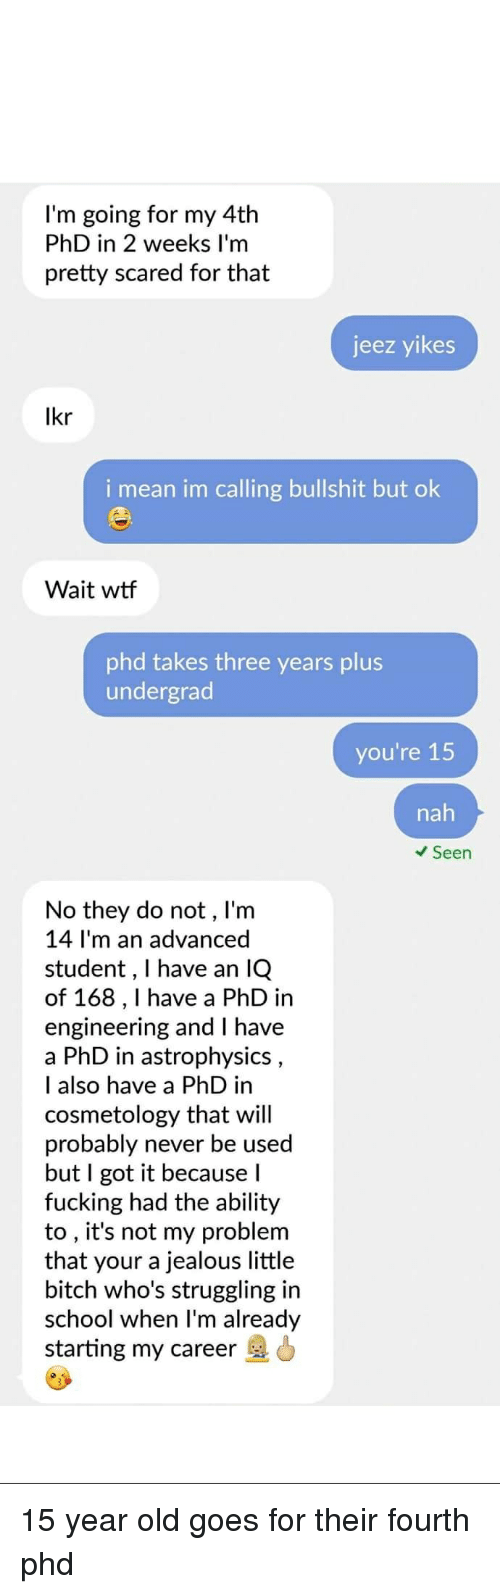 Bitch, Fucking, and Jealous: l'm going for my 4th  PhD in 2 weeks I'm  pretty scared for that  jeez yikes  i mean im calling bullshit but ok  Wait wtf  phd takes three years plus  undergrad  you're 15  nah  Seen  No they do not, I'm  14 I'm an advanced  student, I have an lQ  of 168,1I have a PhD in  engineering and I have  a PhD in astrophysics  I also have a PhD in  cosmetology that will  probably never be used  but I got it because l  fucking had the ability  to , it's not my problem  that your a jealous little  bitch who's struggling in  school when l'm already  starting my career